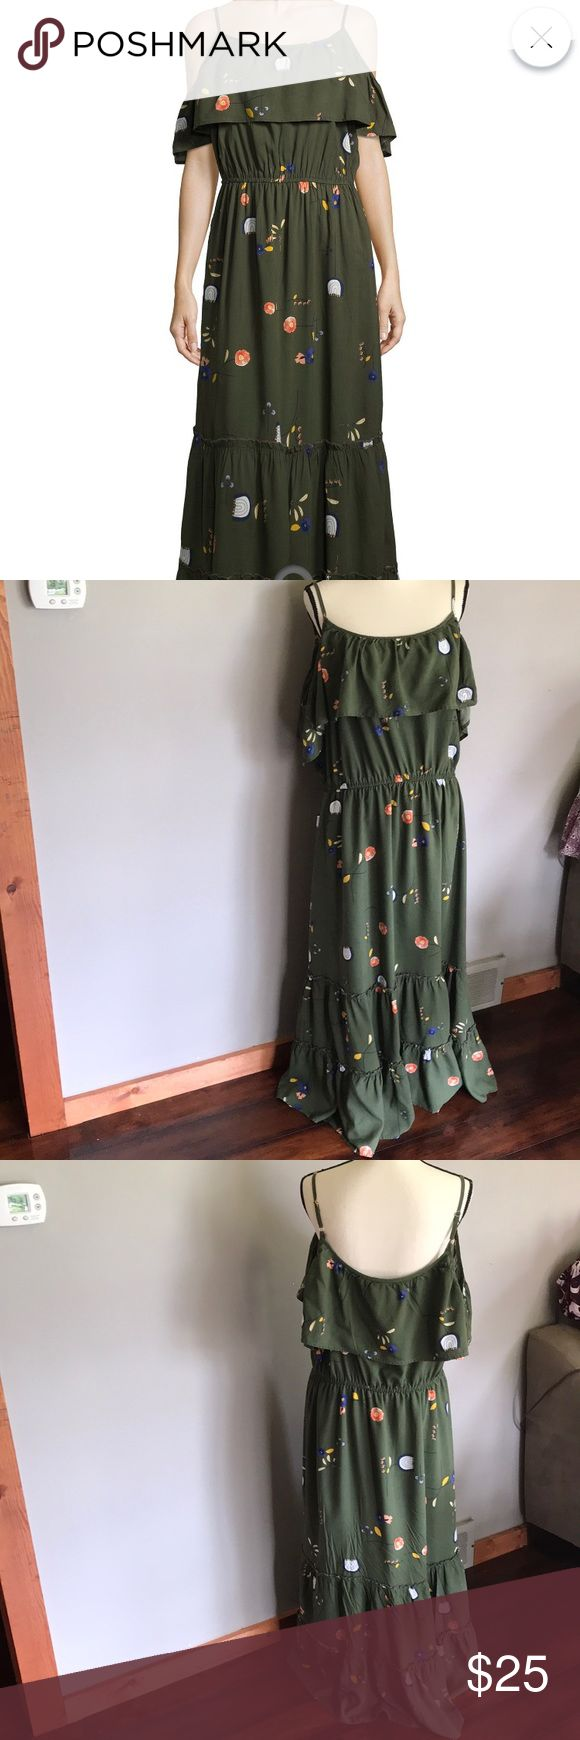 733 Best My Posh Picks Images On Pinterest Ann Taylor Butterfly Imo X6 Lucky Nwot Ana Maxi Dress Size Xl